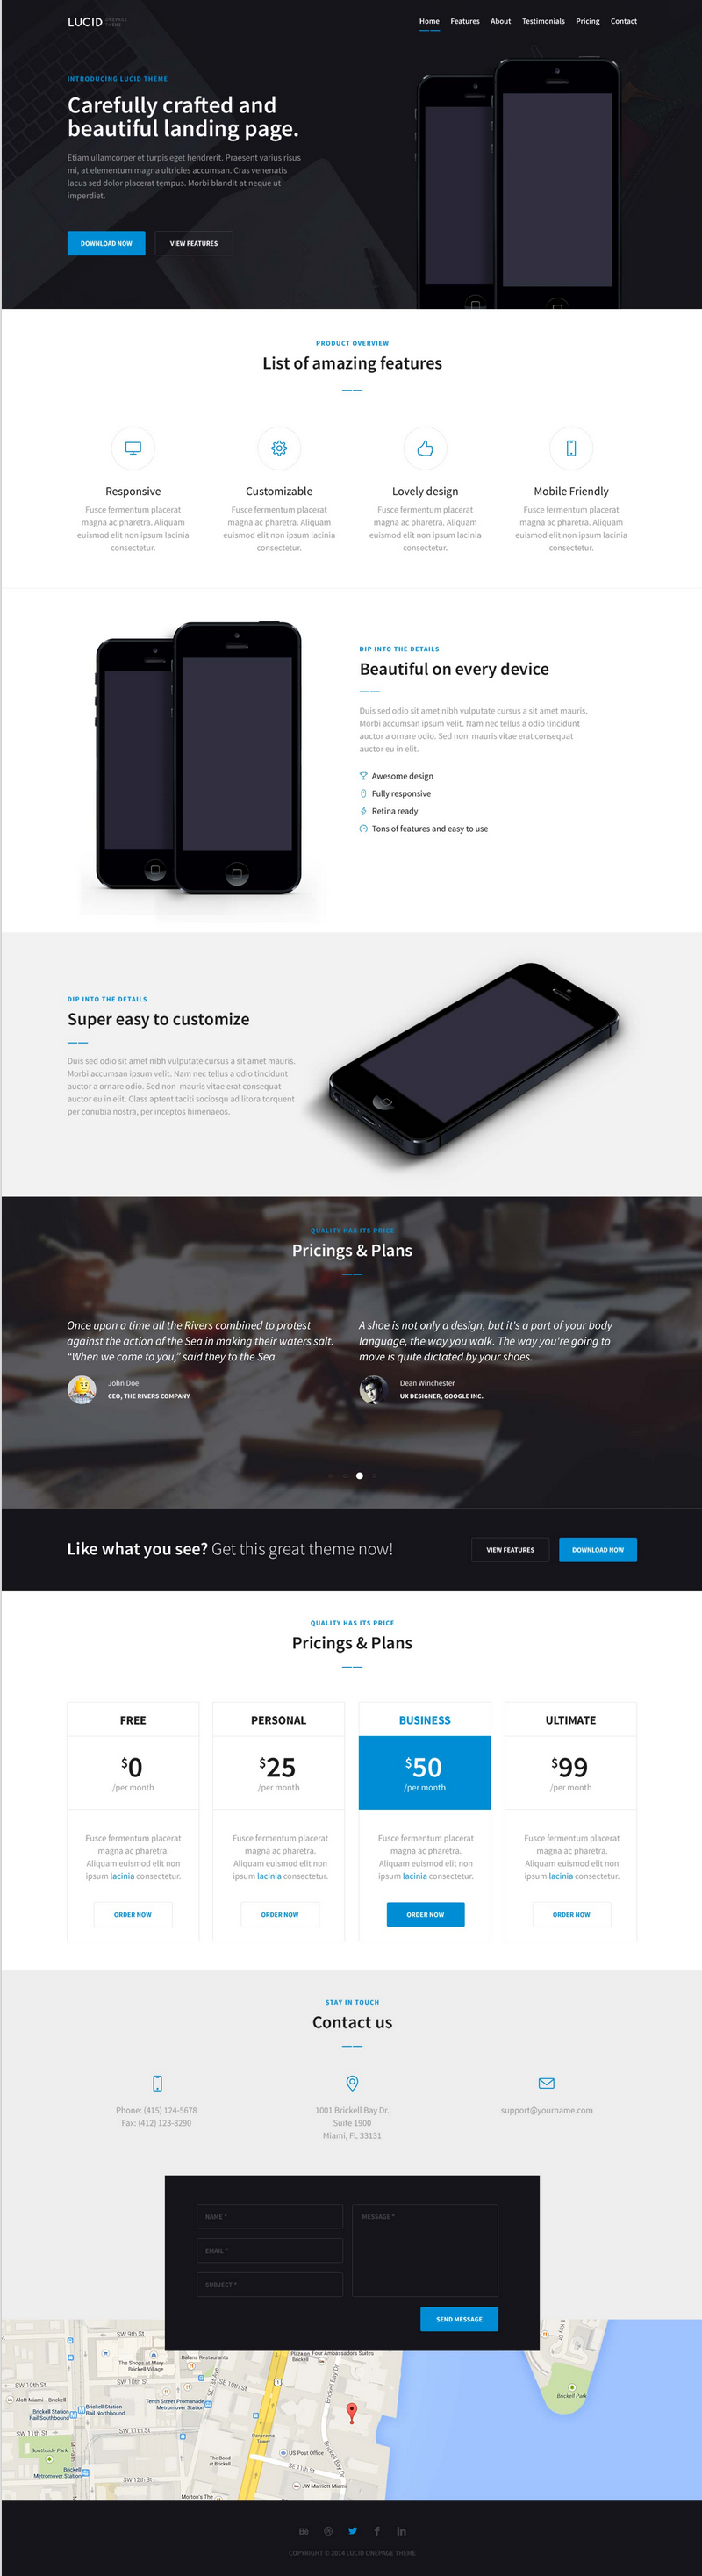 lucid free bootstrap landing page template bypeople. Black Bedroom Furniture Sets. Home Design Ideas